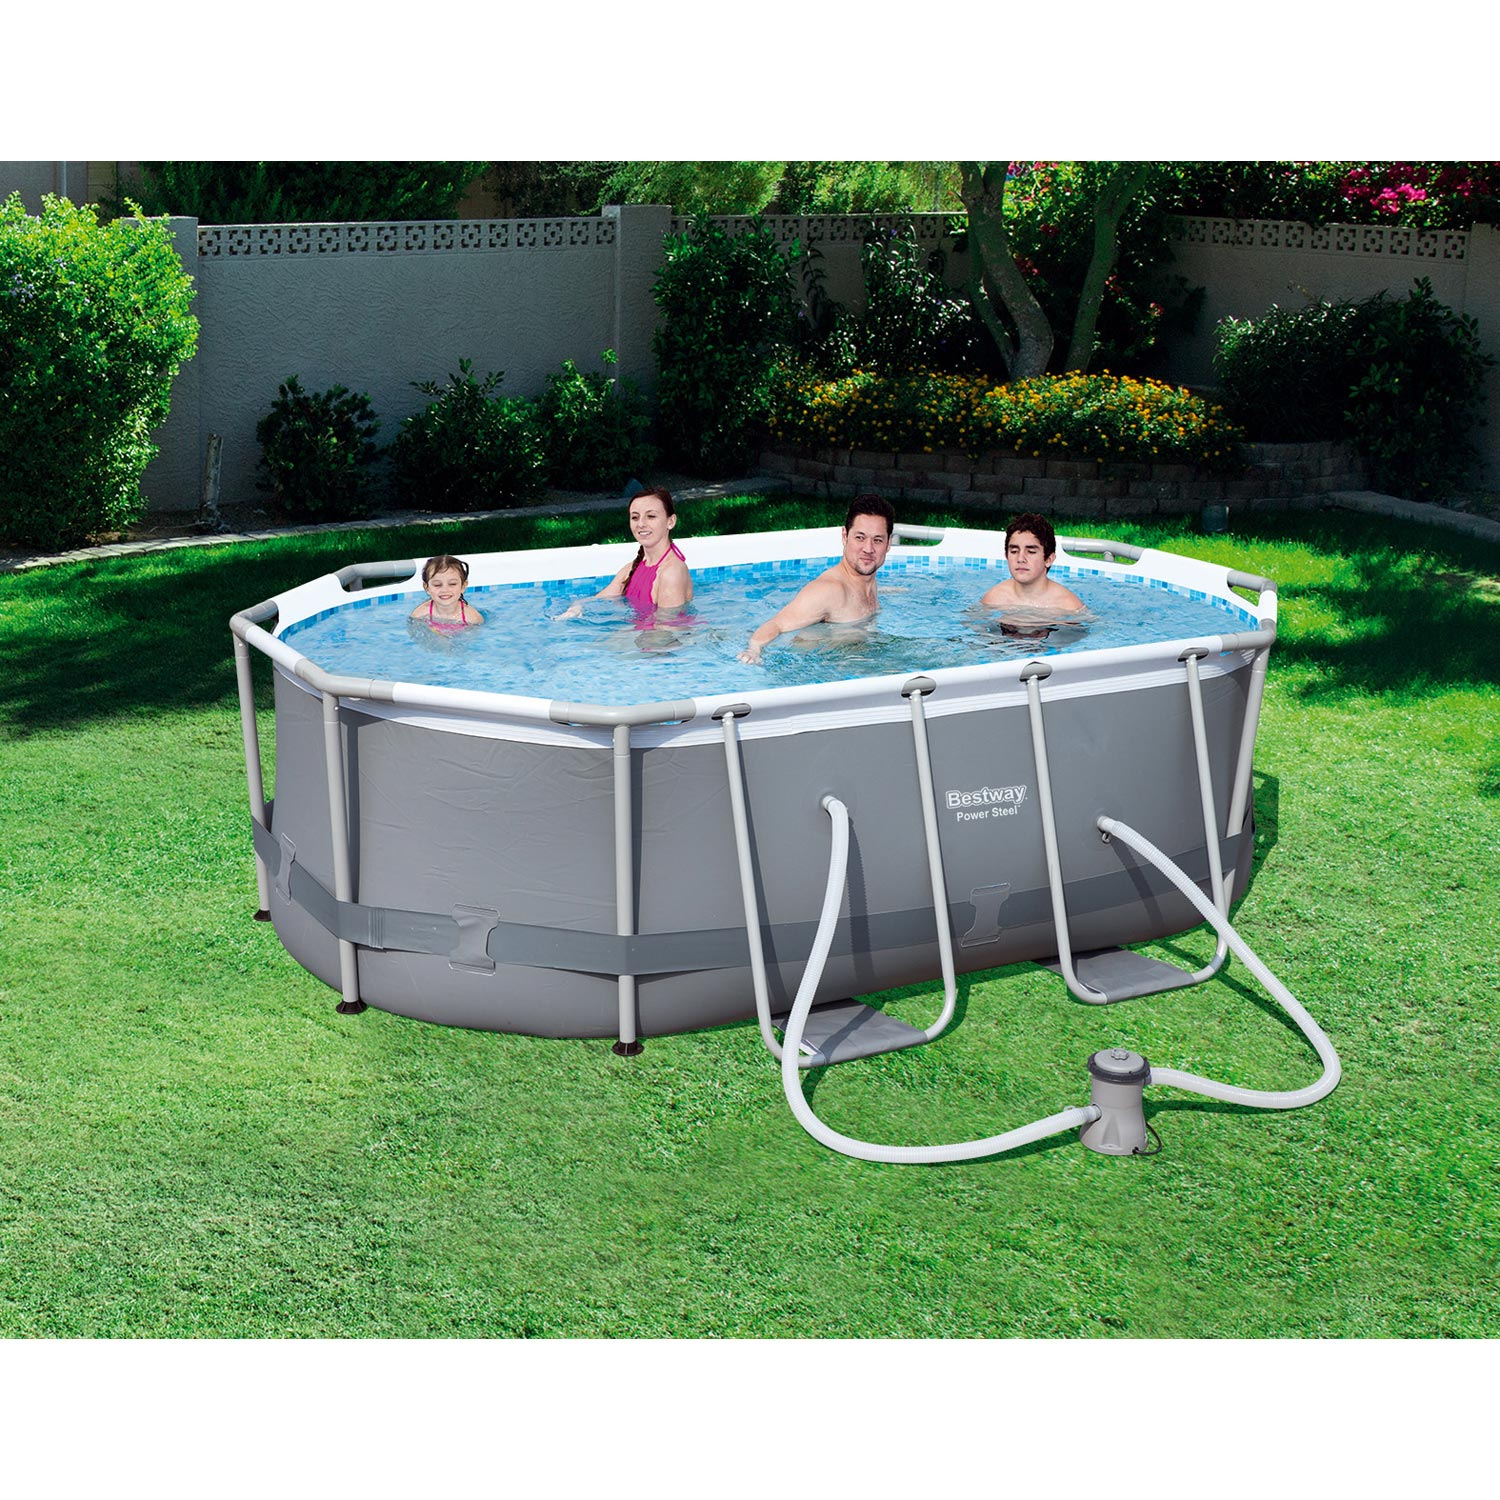 Piscine hors sol autoportante tubulaire bestway l 3 x l 2 for Piscine tubulaire